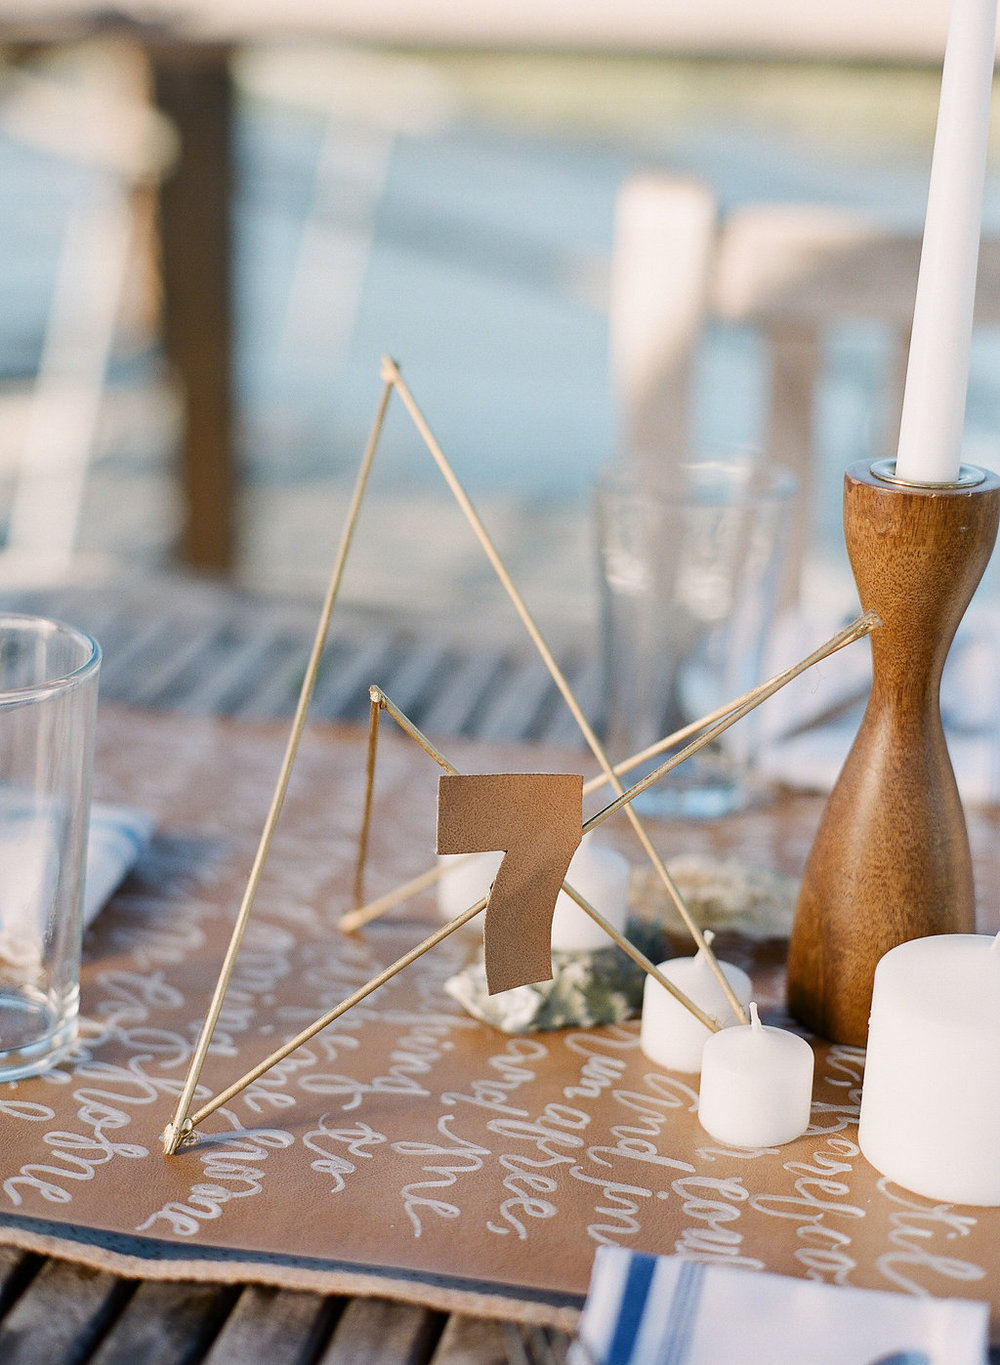 diy-wedding-table-number-geometric-shapes-table-number-the-wyld-dock-bar-wedding-inspiration-rustic-outdoor-wedding-ivory-and-beau-savannah-wedding-planner-savannah-event-designer.jpg